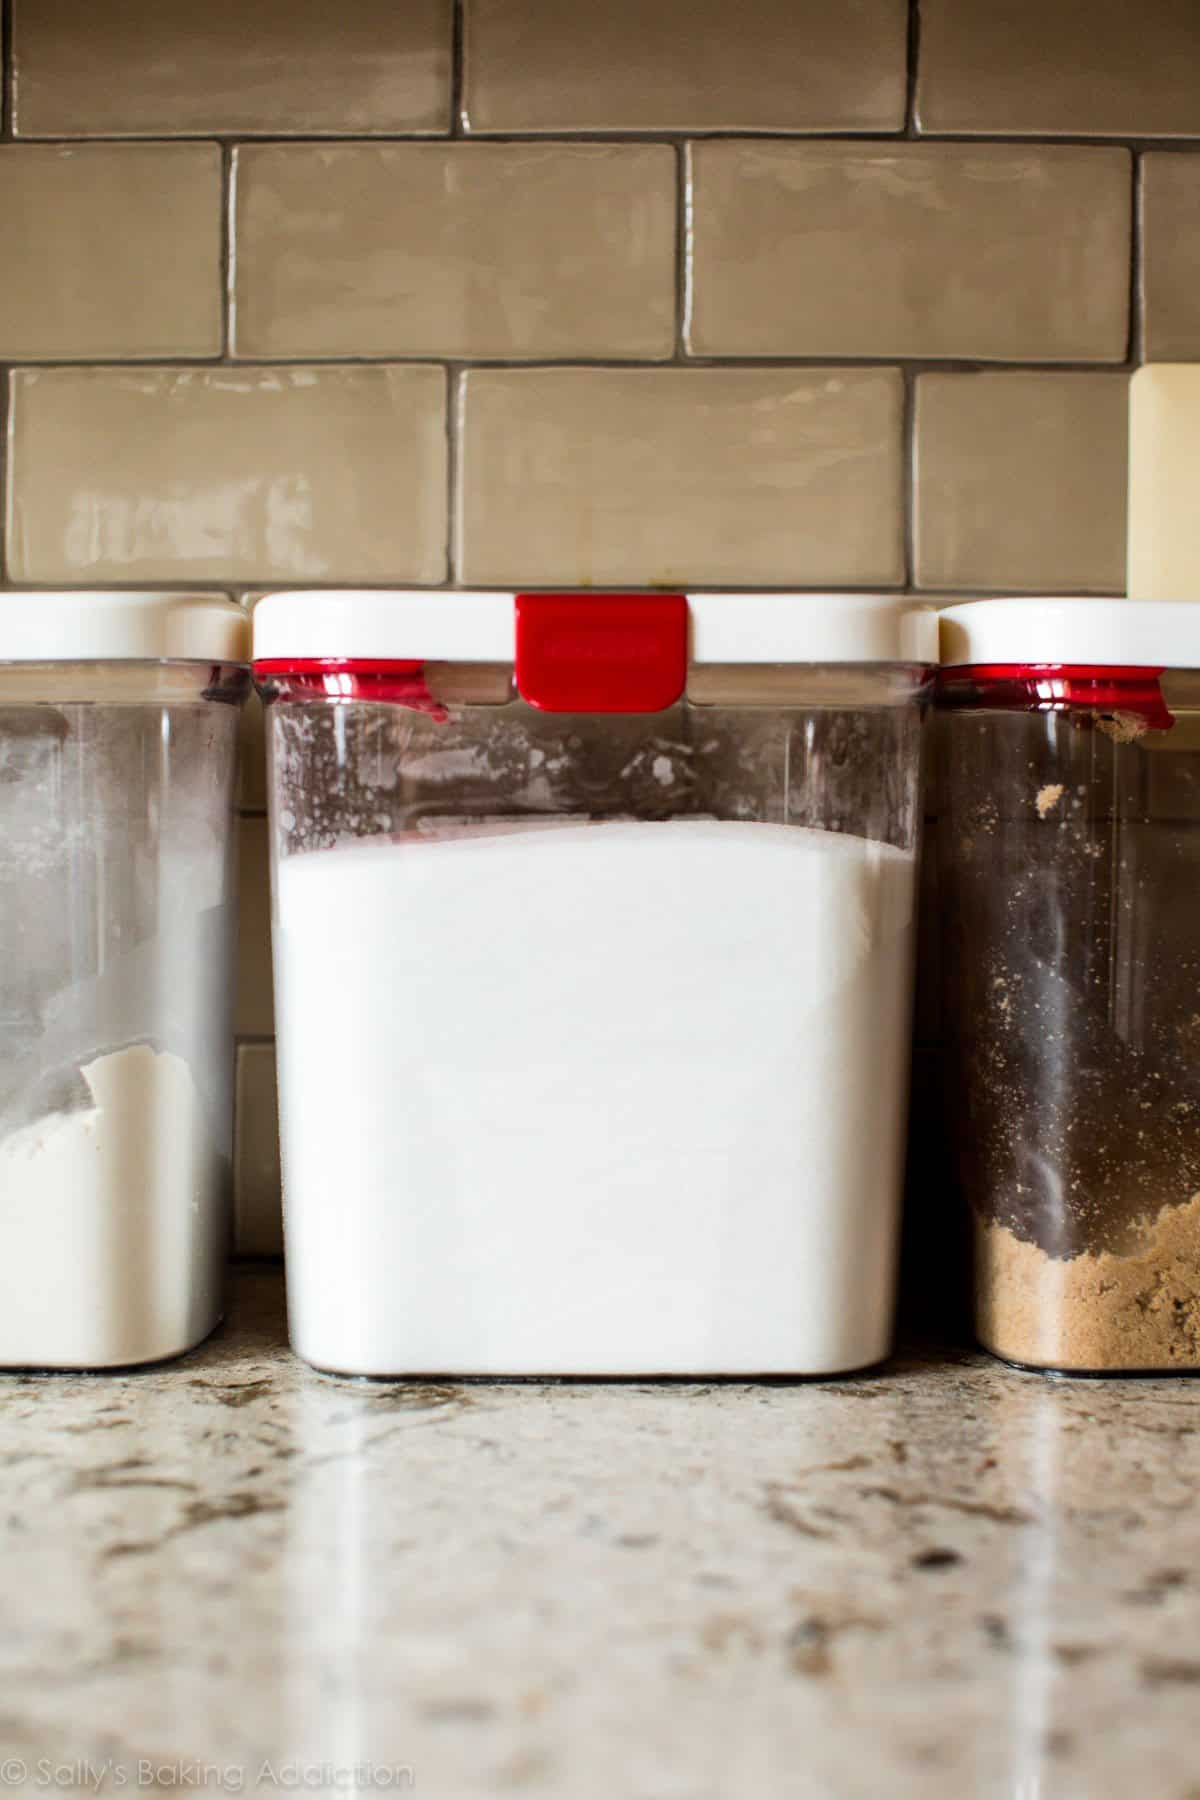 Flour sugar containers